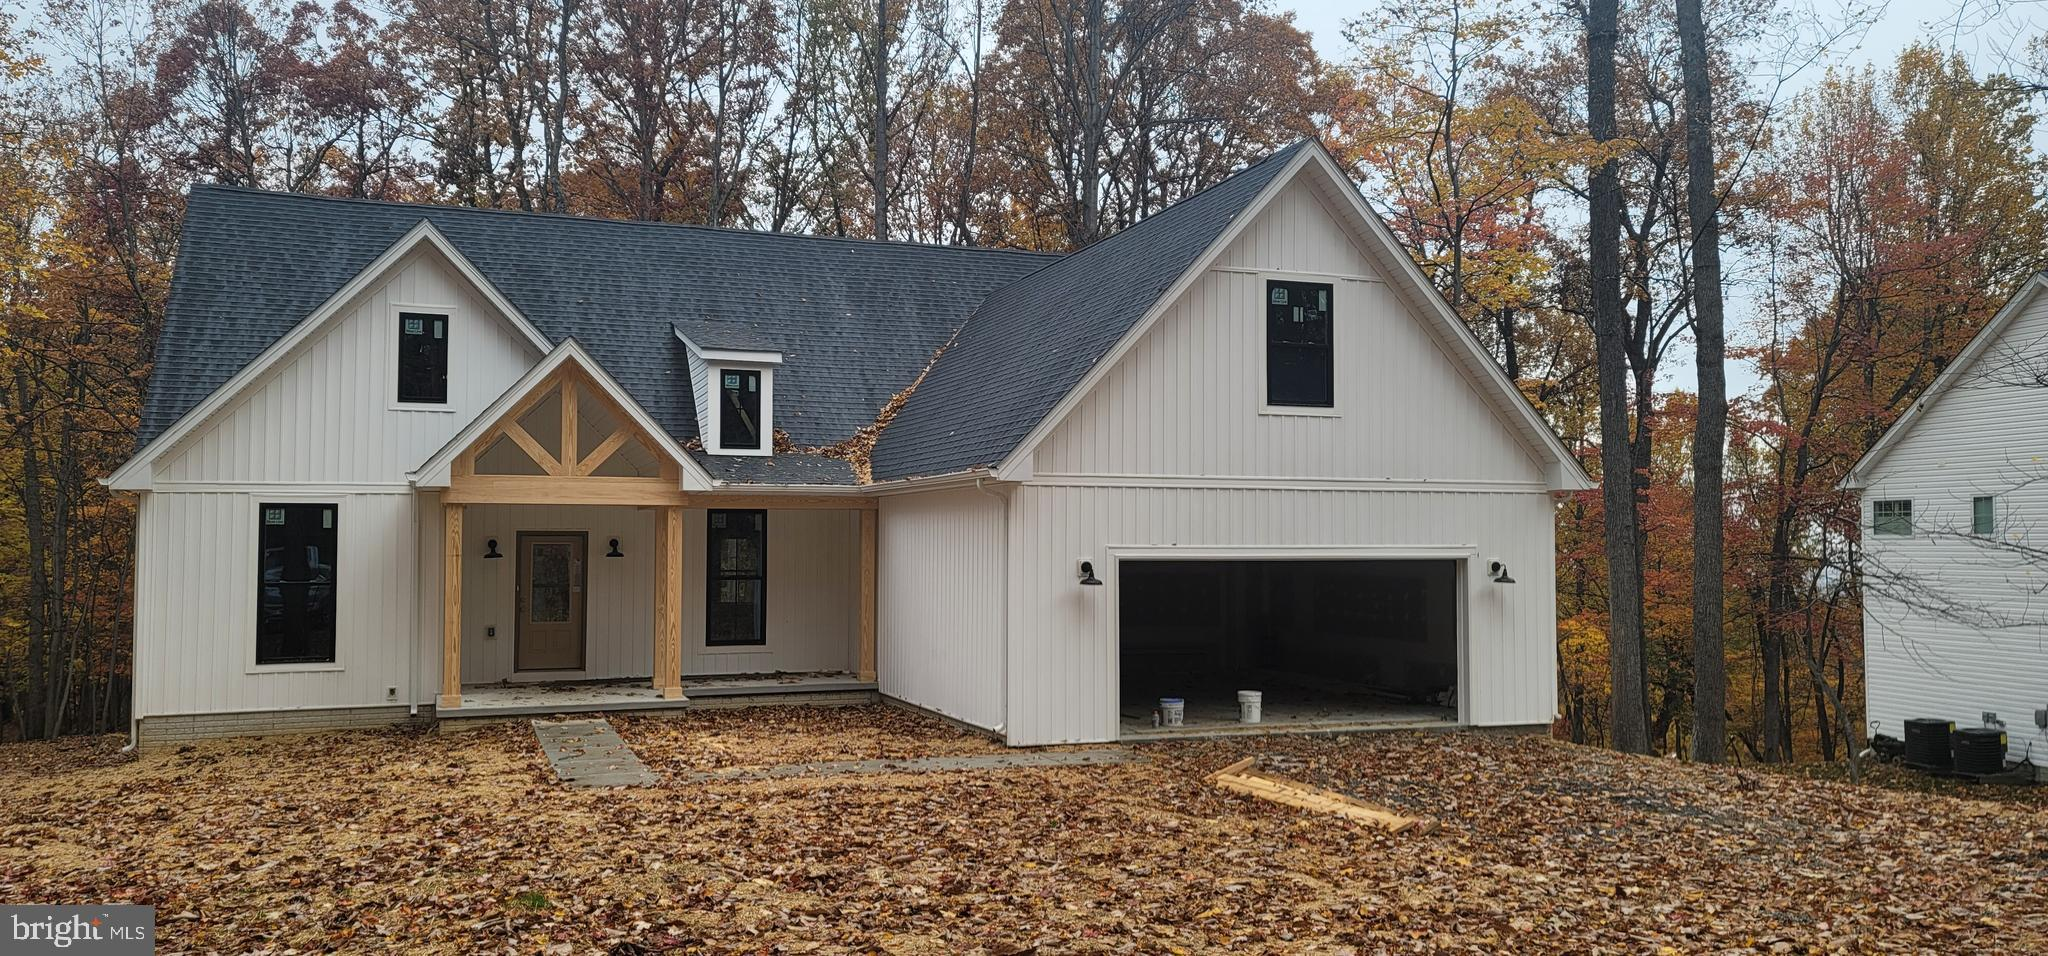 READY LATE JANUARY 2022 This 4 bed 3.5 bath ranch style home depicts quality construction with atten